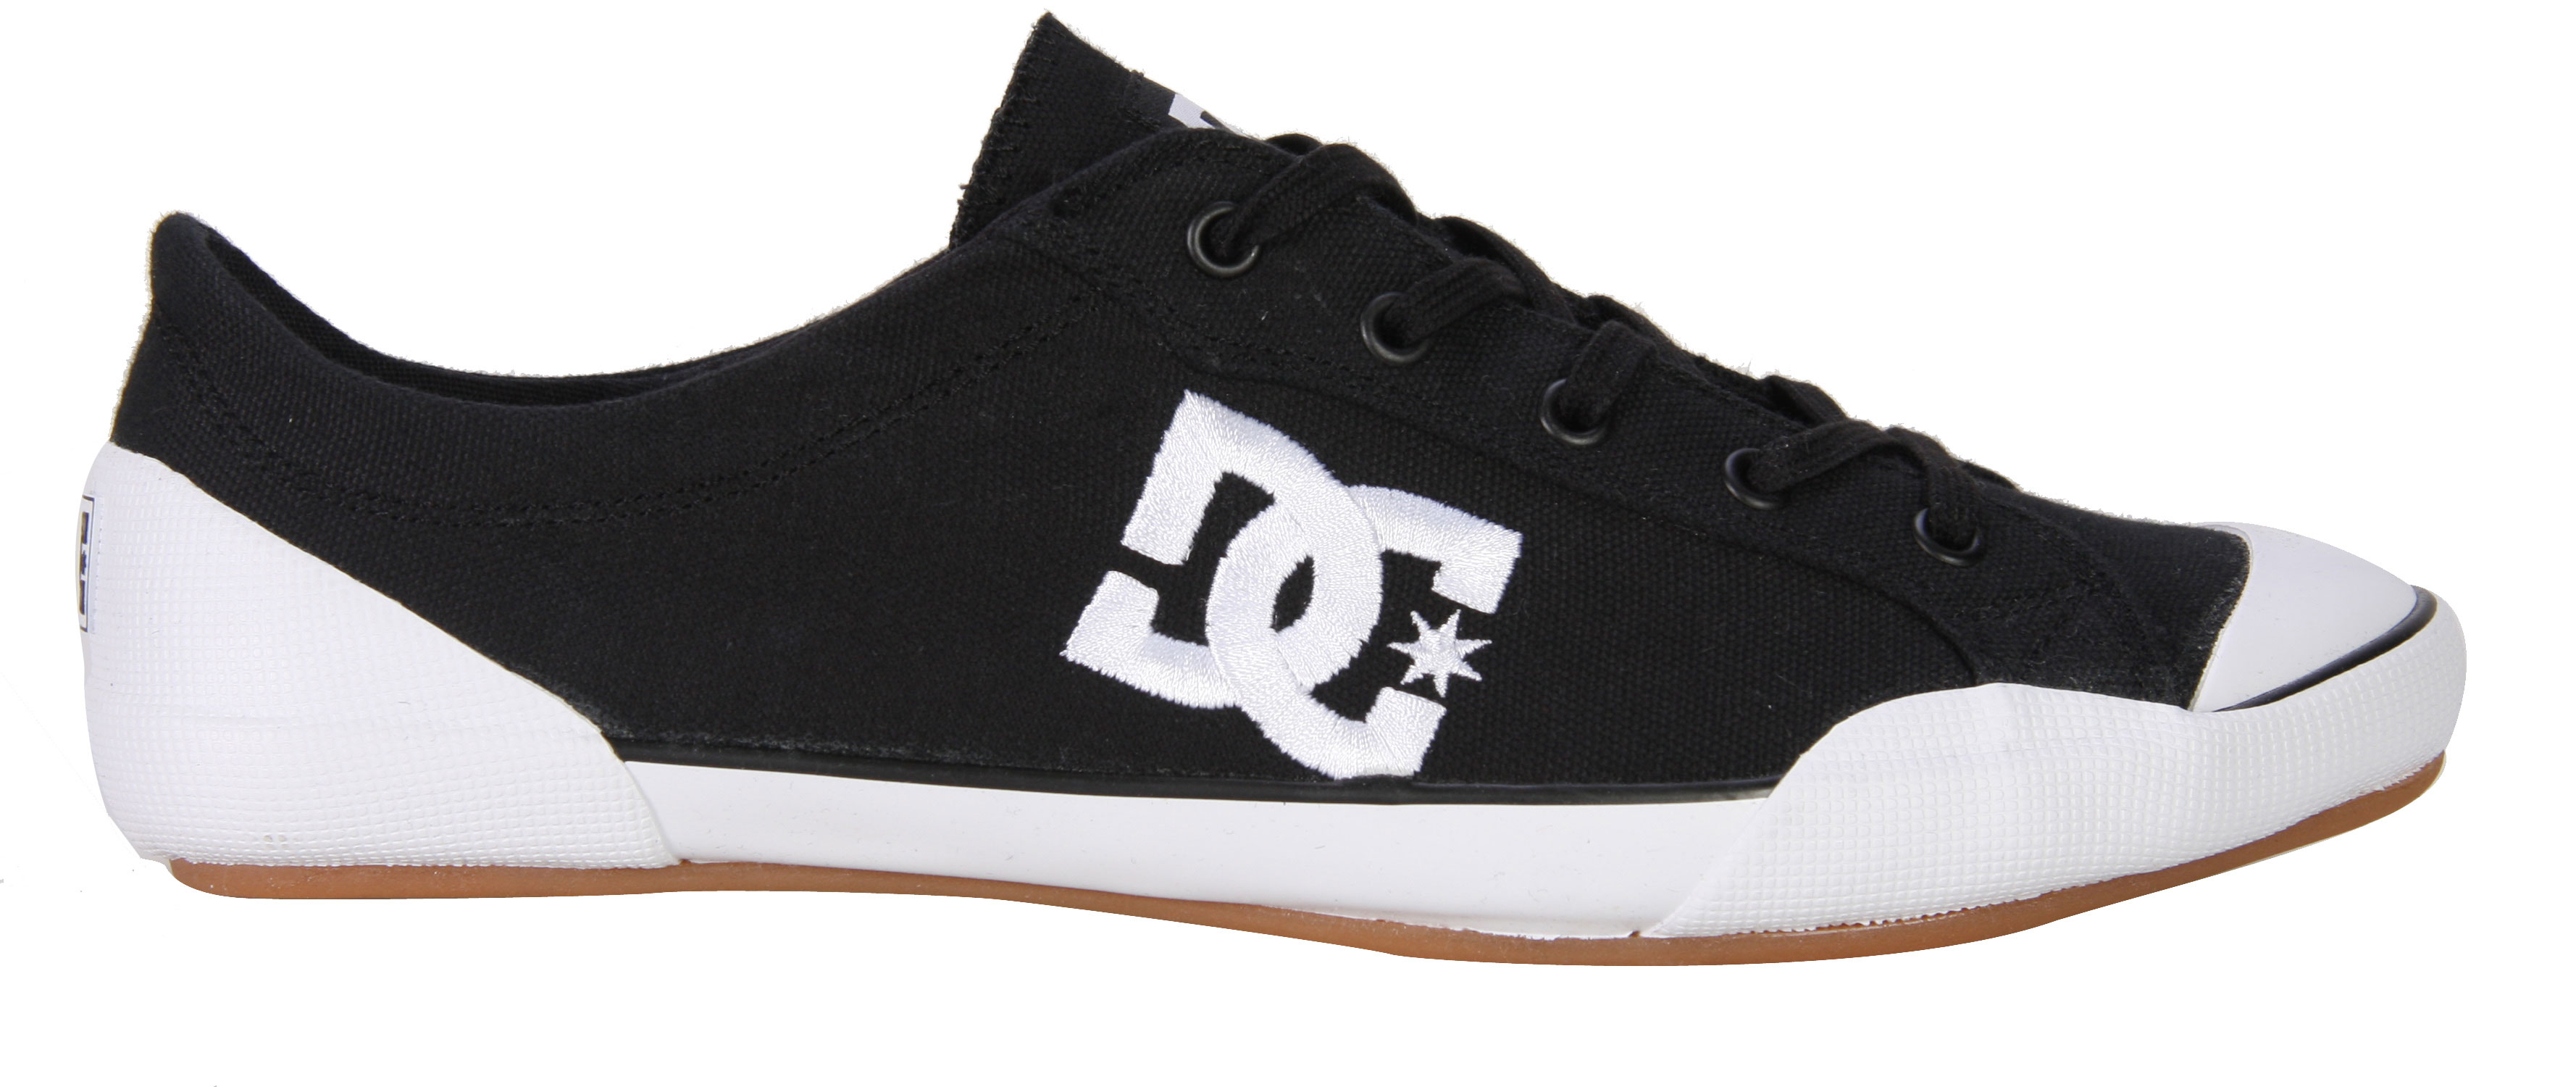 Skateboard Key Features of The DC Chelsea Z Low Skate Shoes: Synthetic leather or synthetic nubuck upper Lightweight jacquard upper Eyelets on medial side Foam-padded tongue and collar Lightweight mesh tongue Vulcanized construction Sticky rubber outsole Imported - $23.95